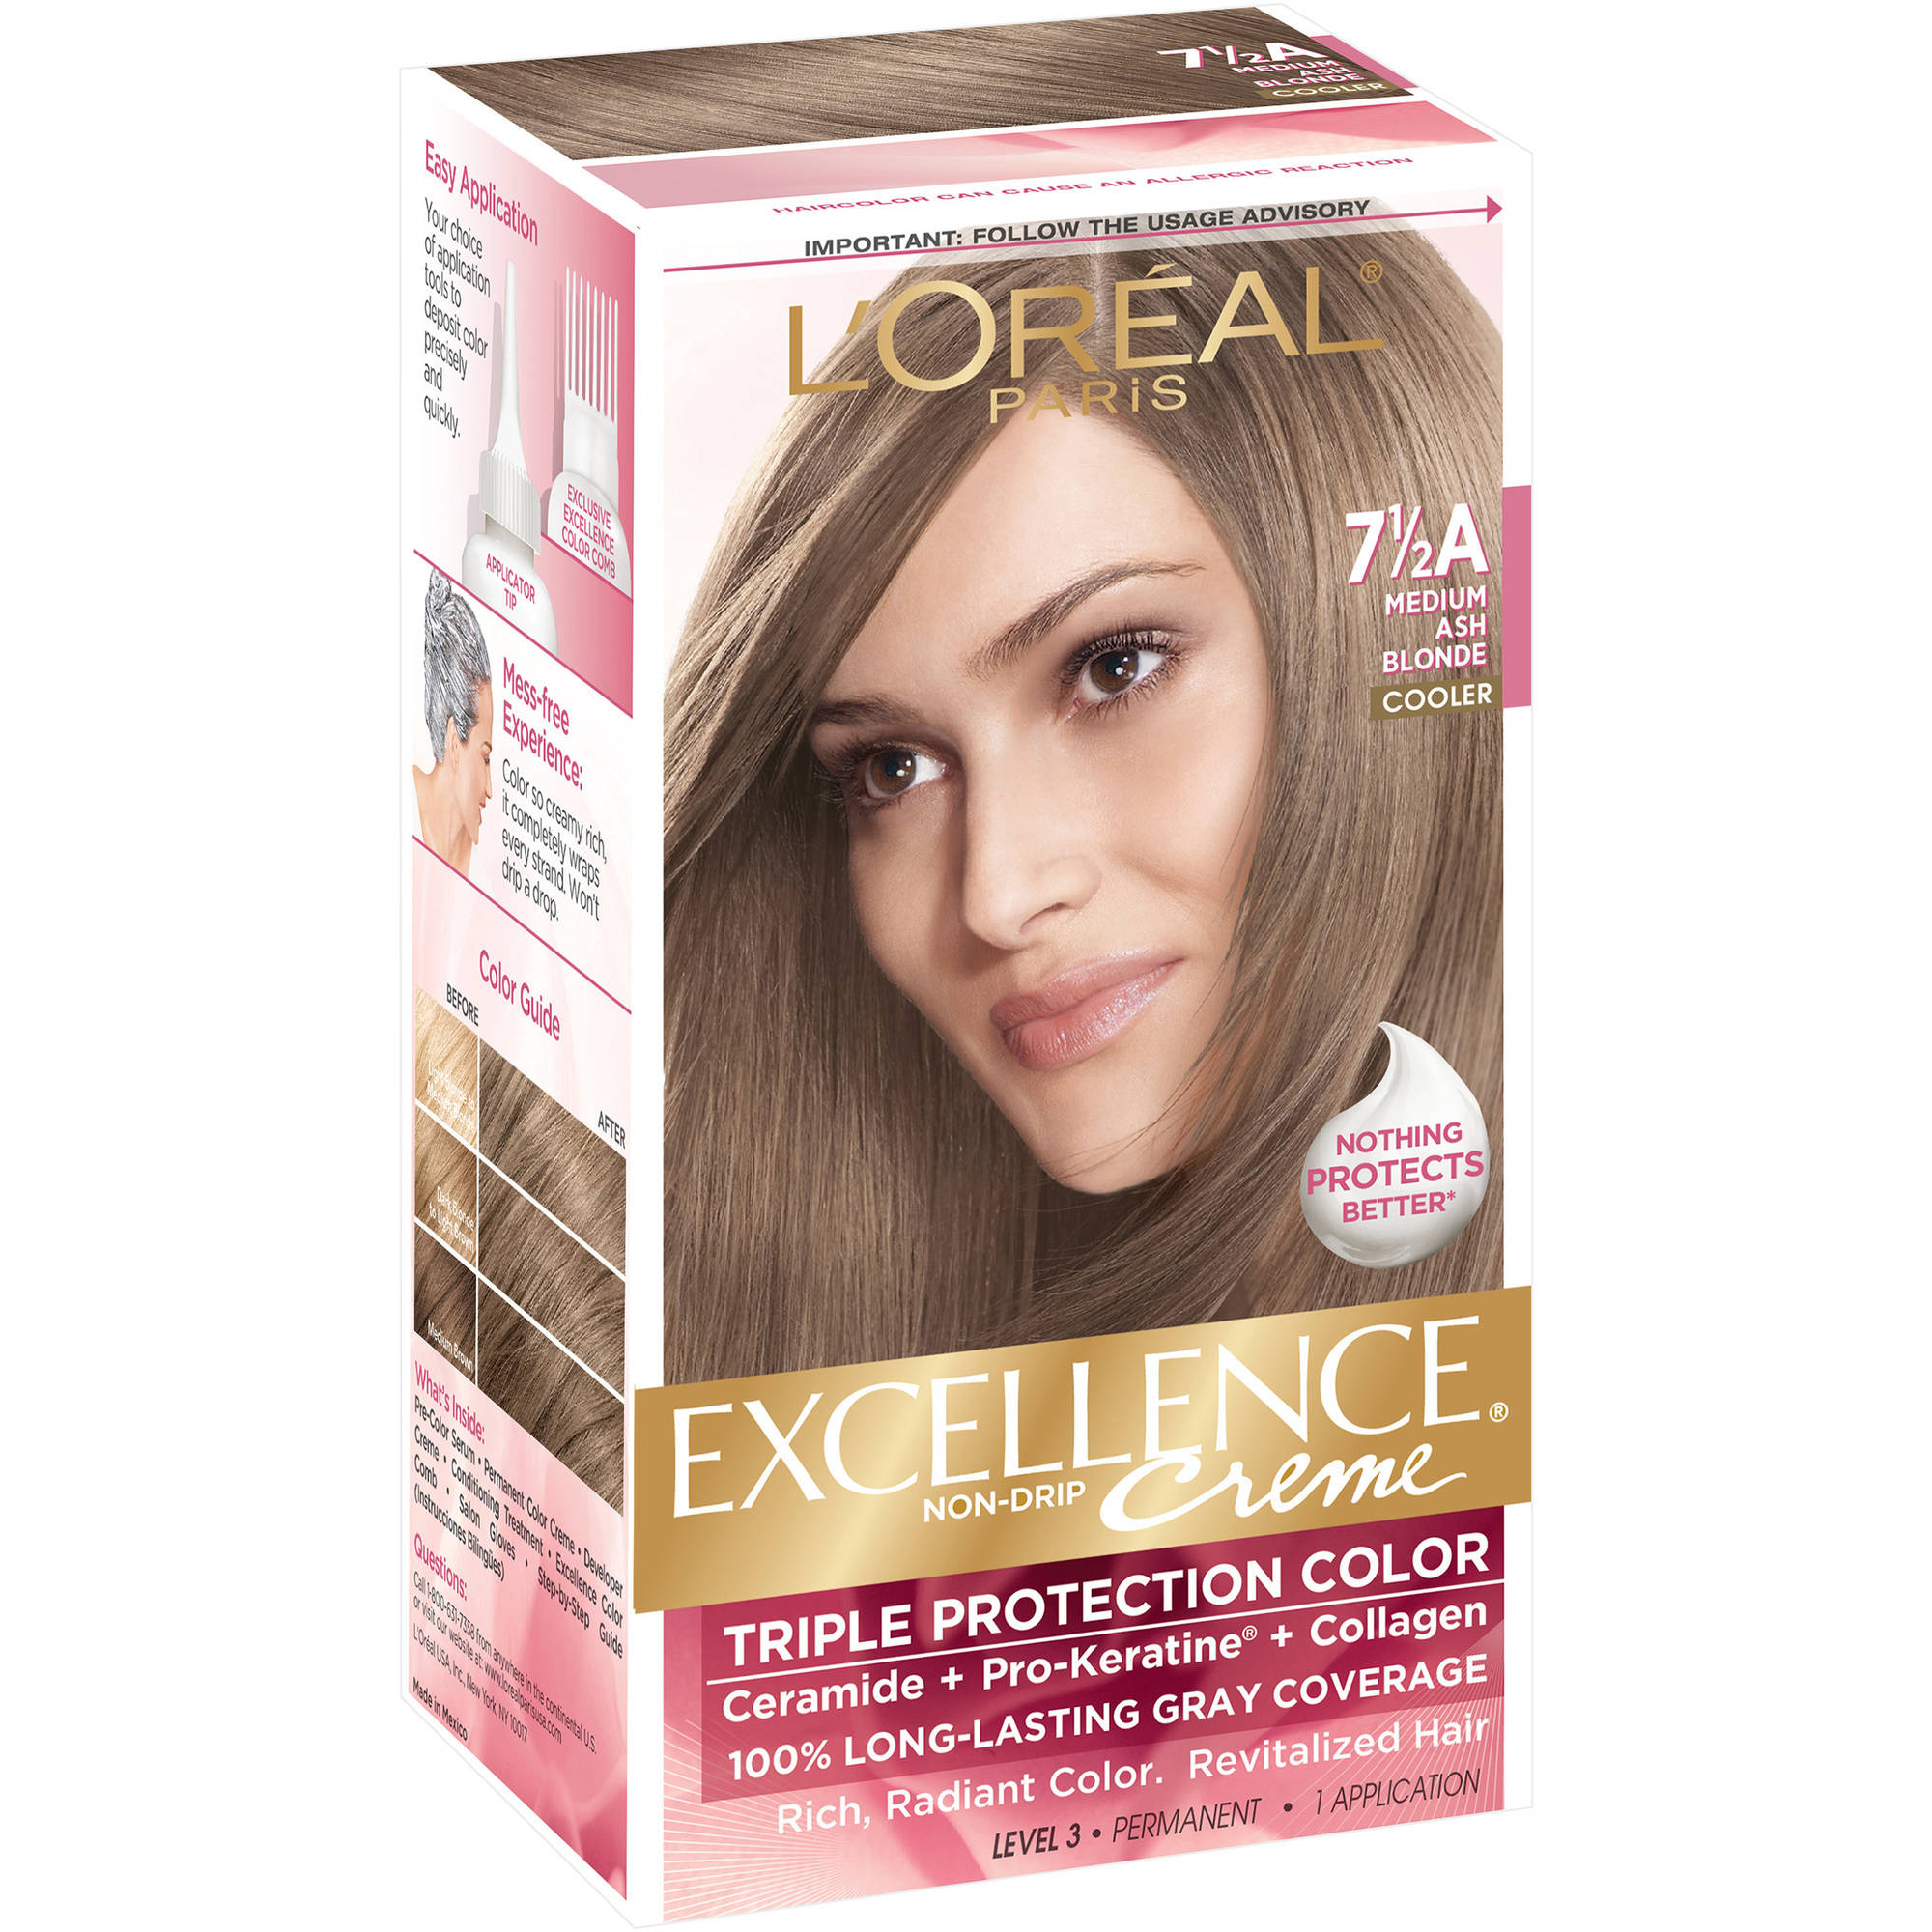 Loreal Medium Ash Blonde Www Pixshark Com Images